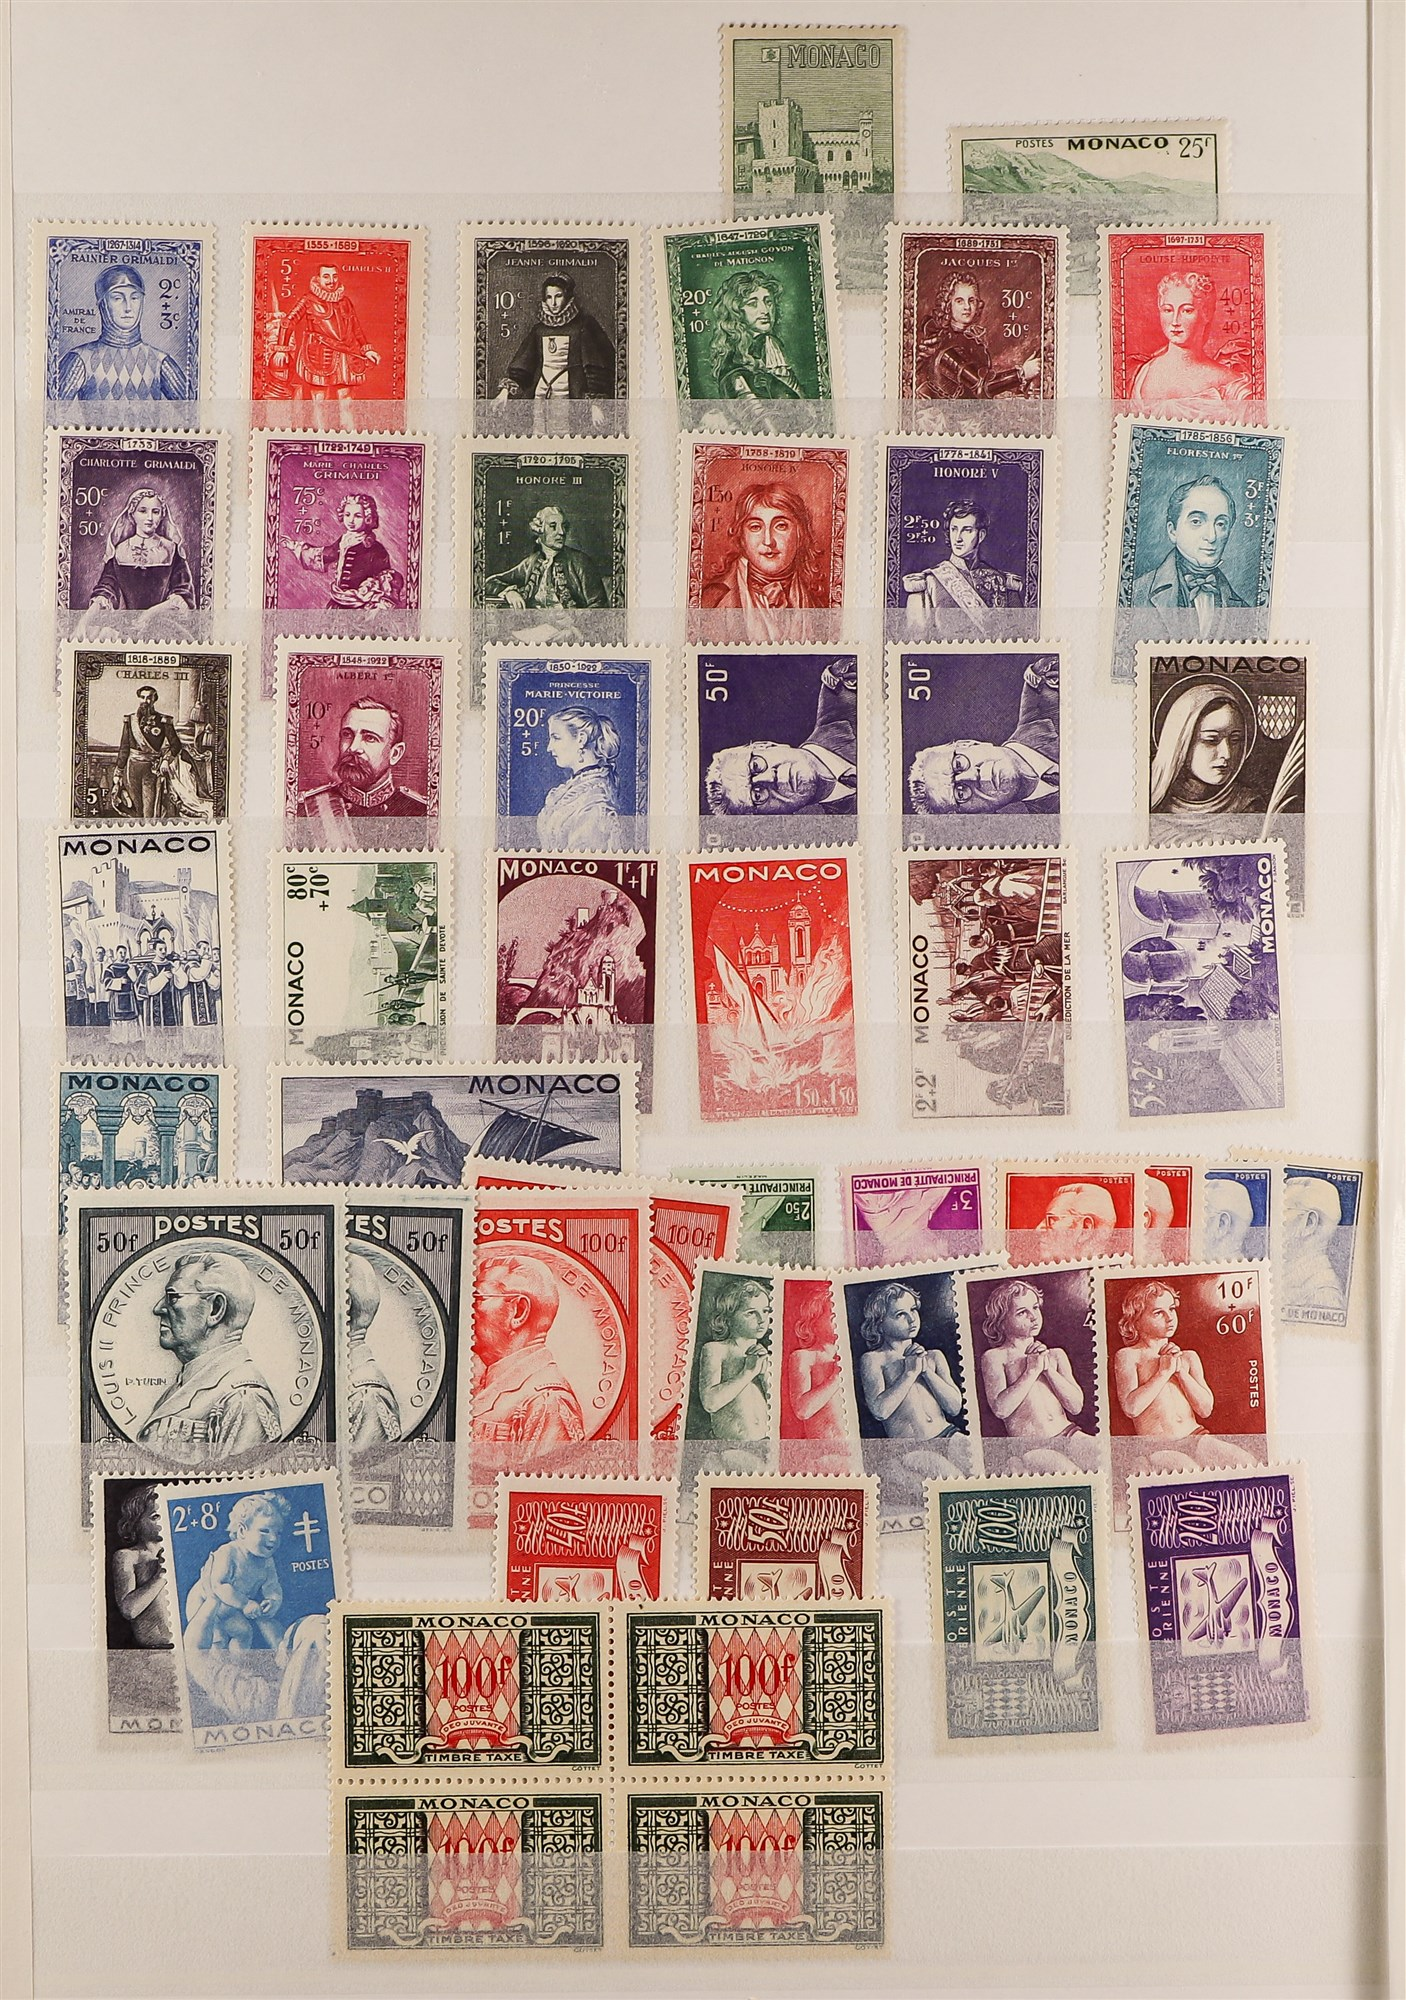 MONACO 1885-2003 MINT COLLECTION with value in the modern never hinged mint issues, note 1924-33 - Image 2 of 6